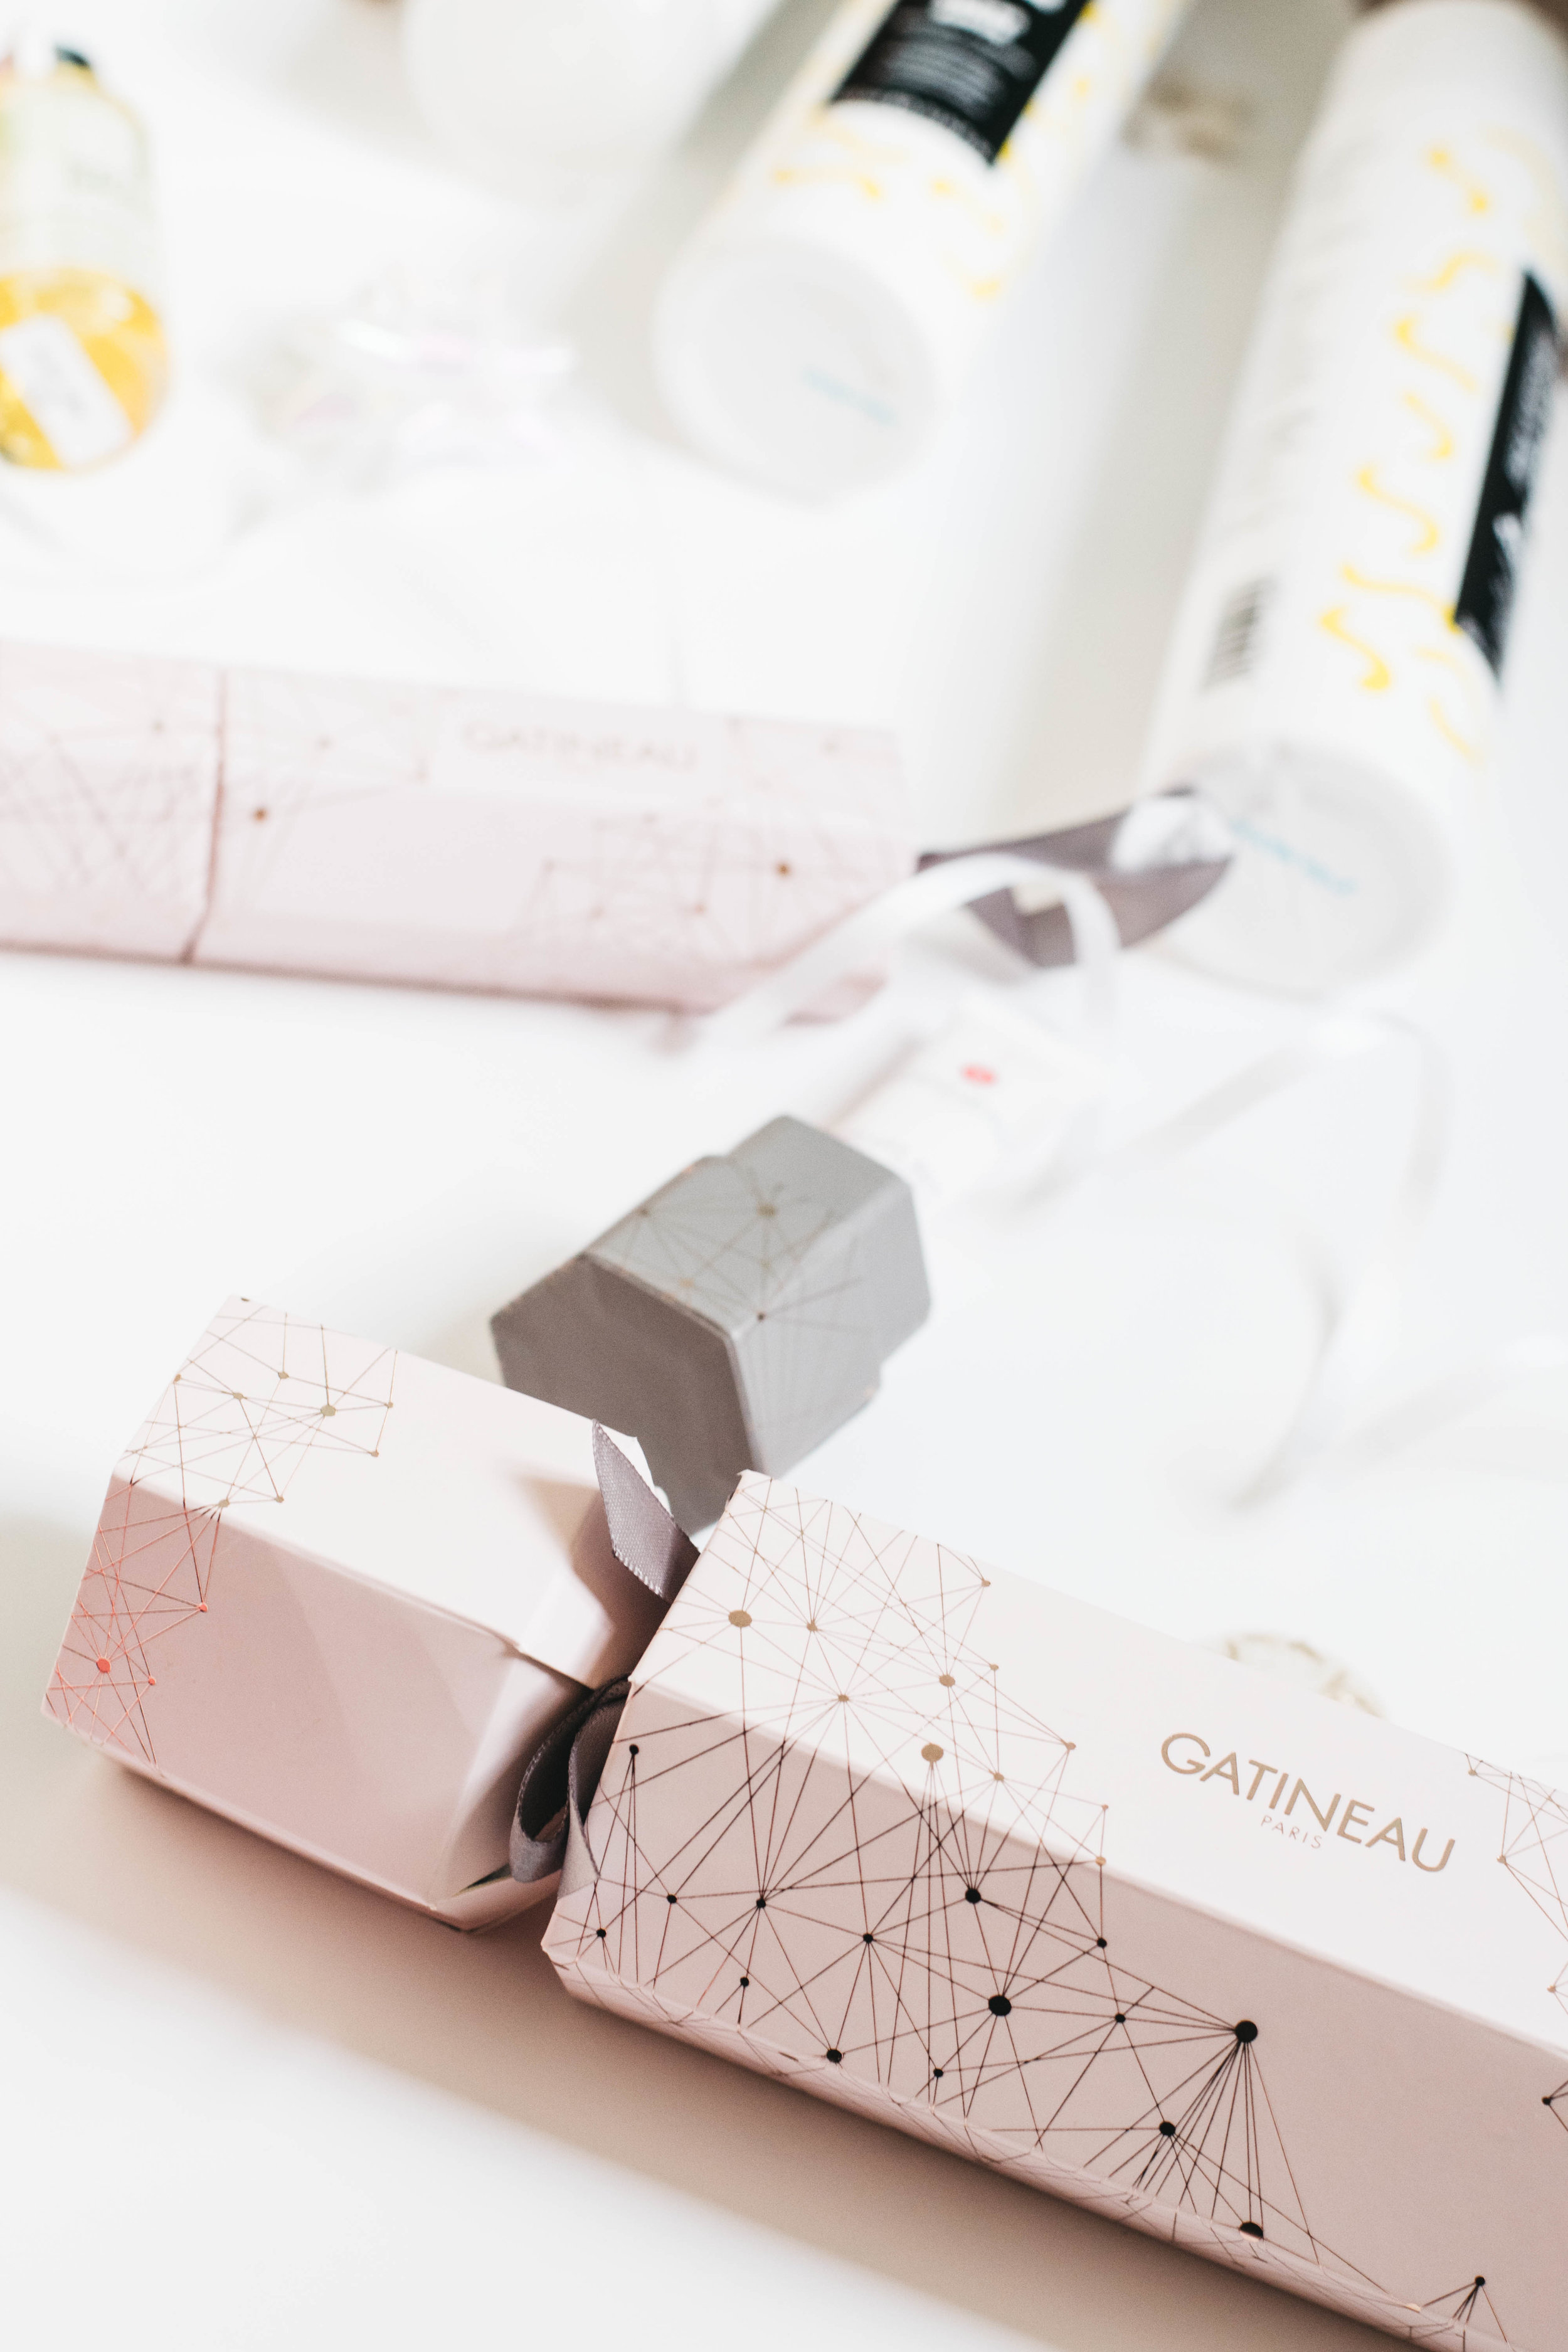 The Christmas Gift Guide for her. Under £50. Manchester, UK beauty and lifestyle blog. UK Beauty Blog. Manchester Beauty blog. UK Lifestyle blog. Manchester lifestyle blog. UK Fashion Blog. Manchester Fashion Blog. Ellie Dickinson. Ellie Grace. Ellie Grace Dickinson.